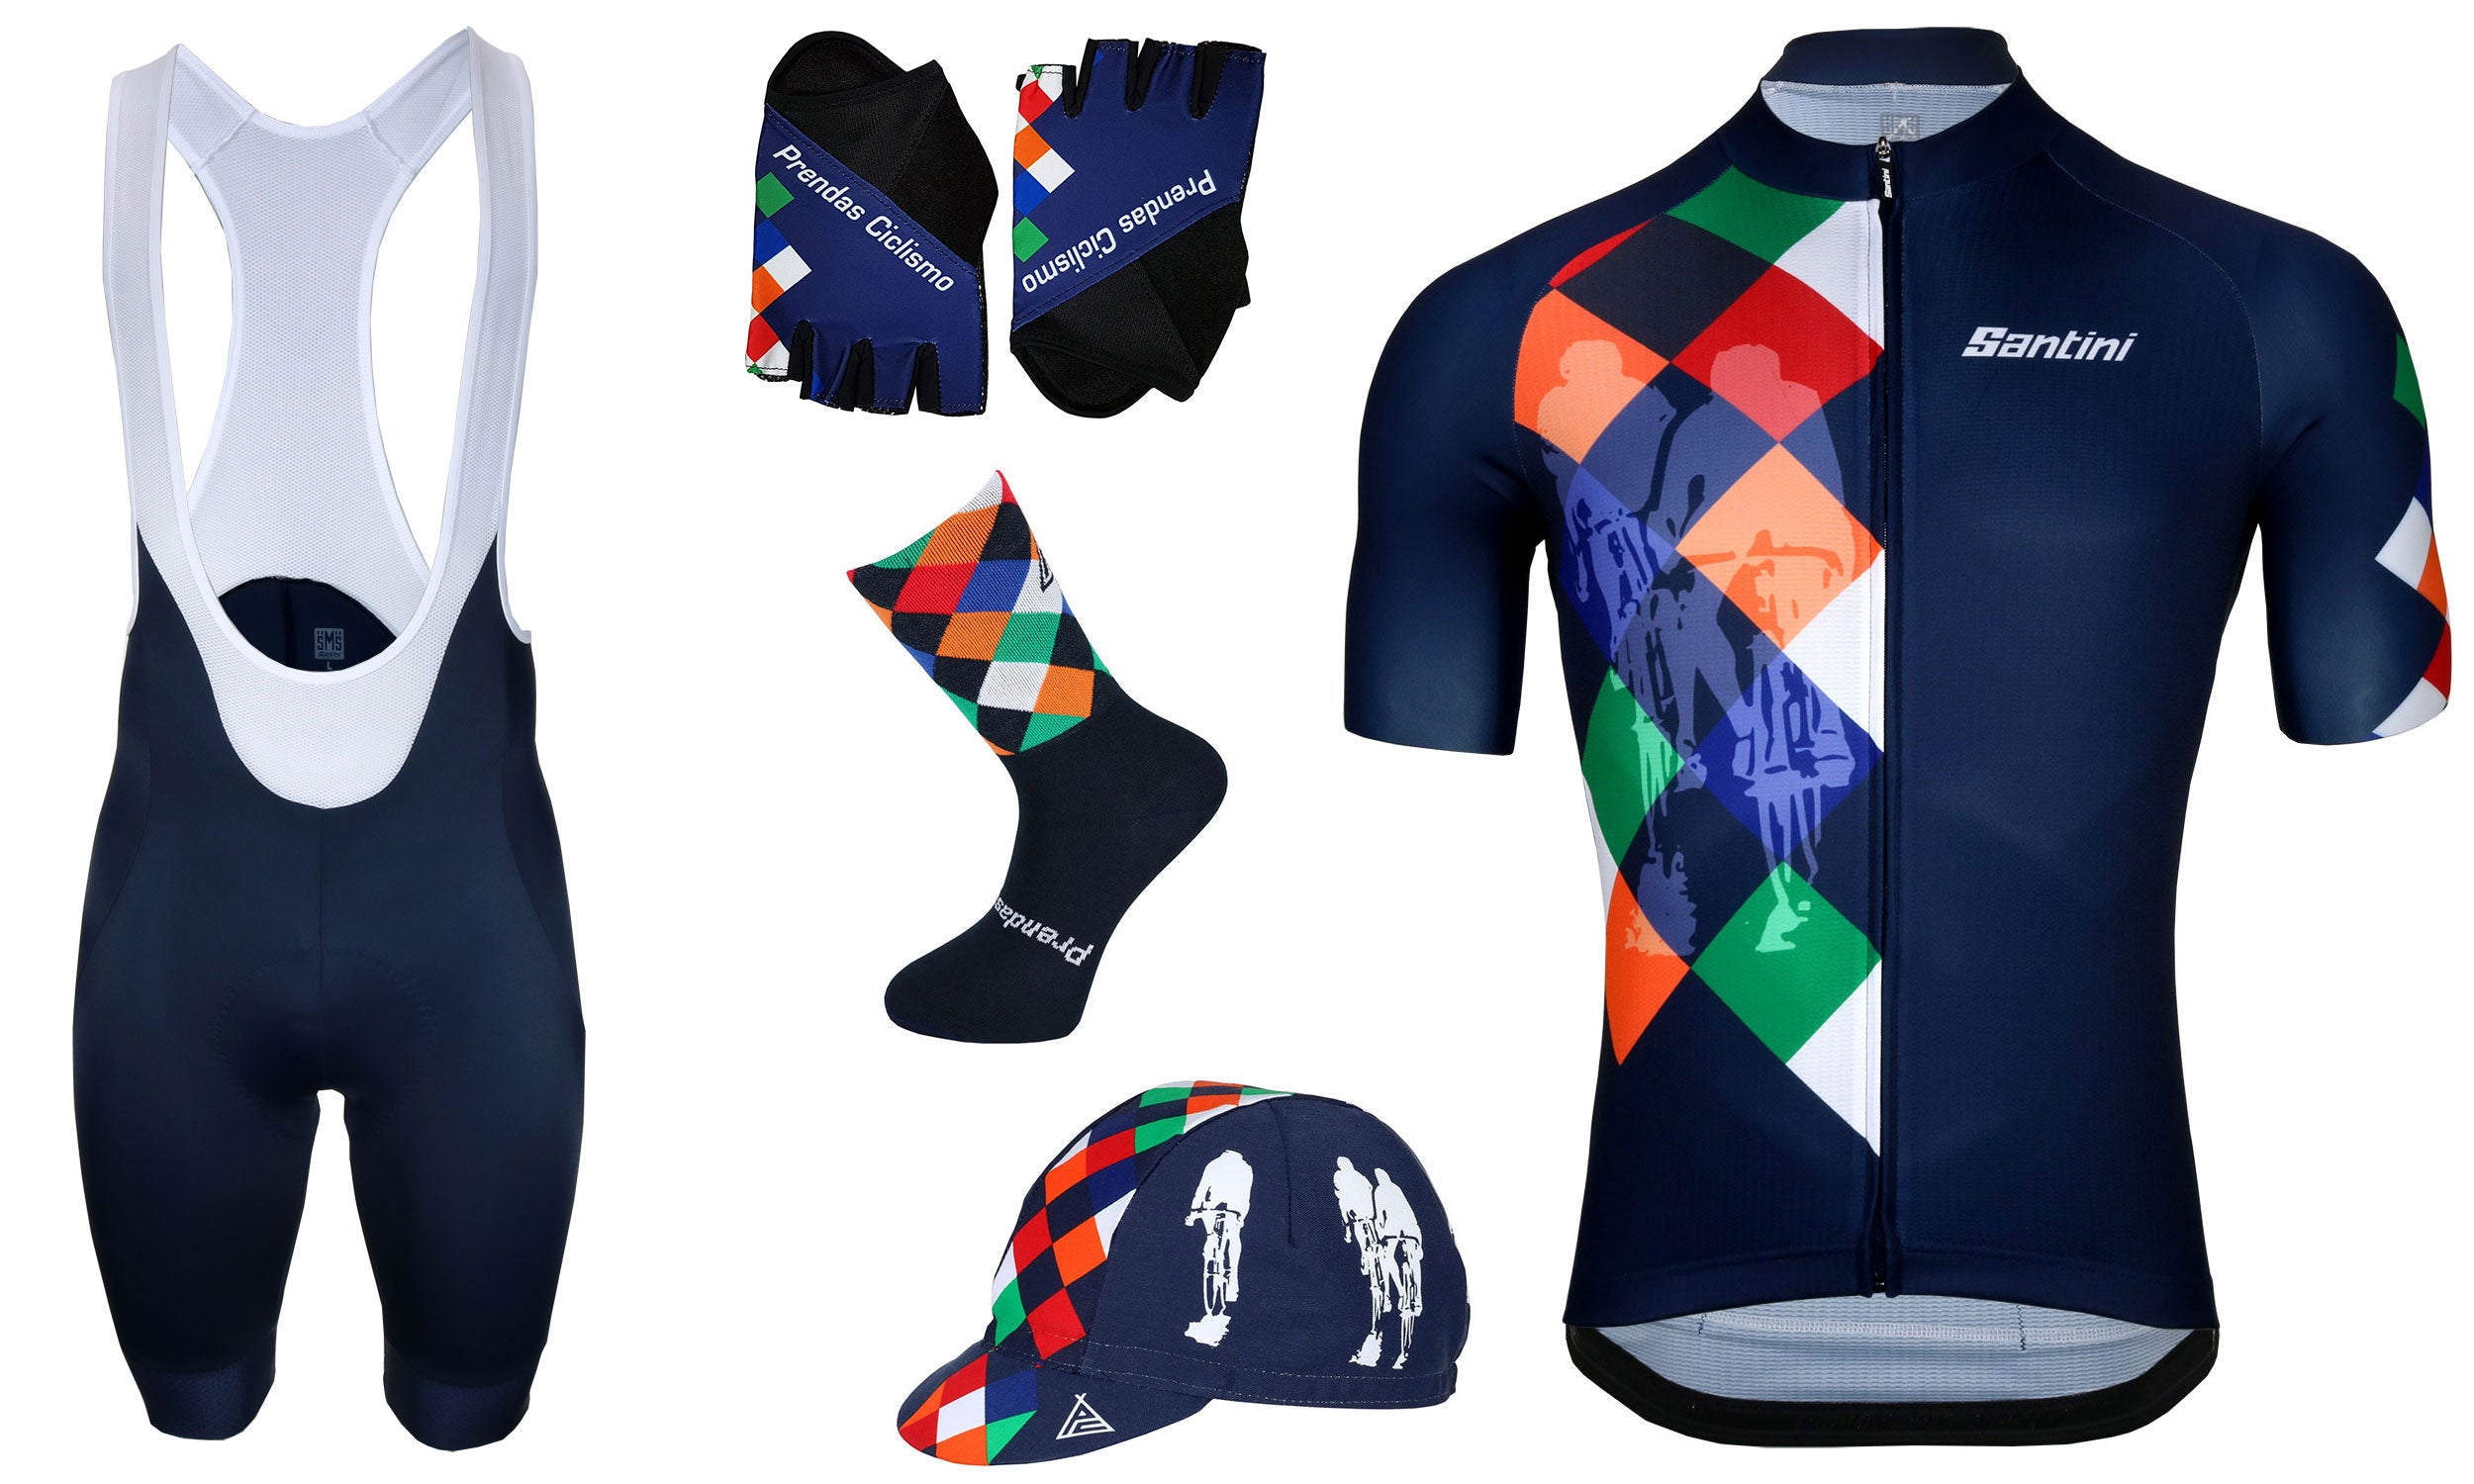 You can buy the exclusive Chambéry 1989 collection at Prendas Ciclismo.